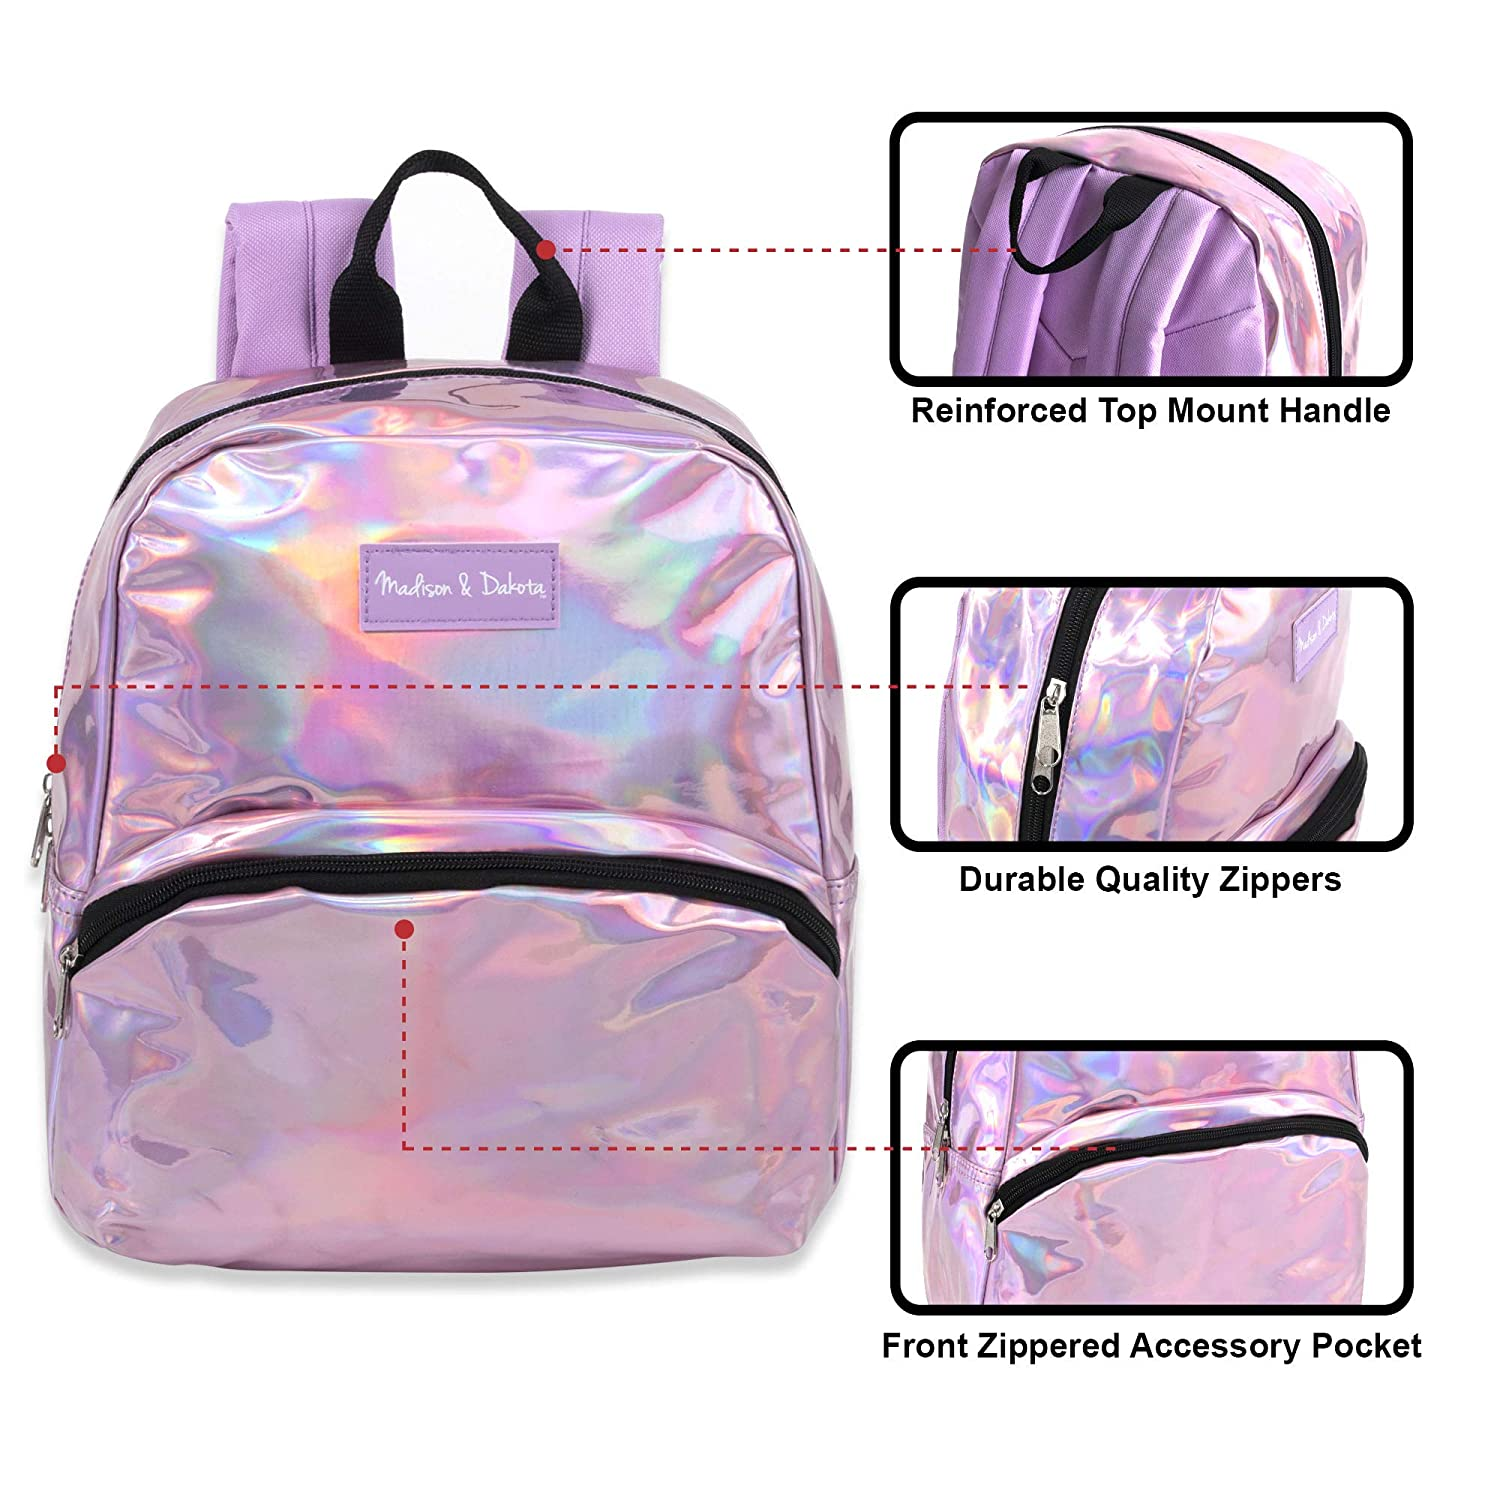 Holographic Laser Leather and Shiny Glitter Mini Backpacks for Women /& Girls/' for Travel College /& Work